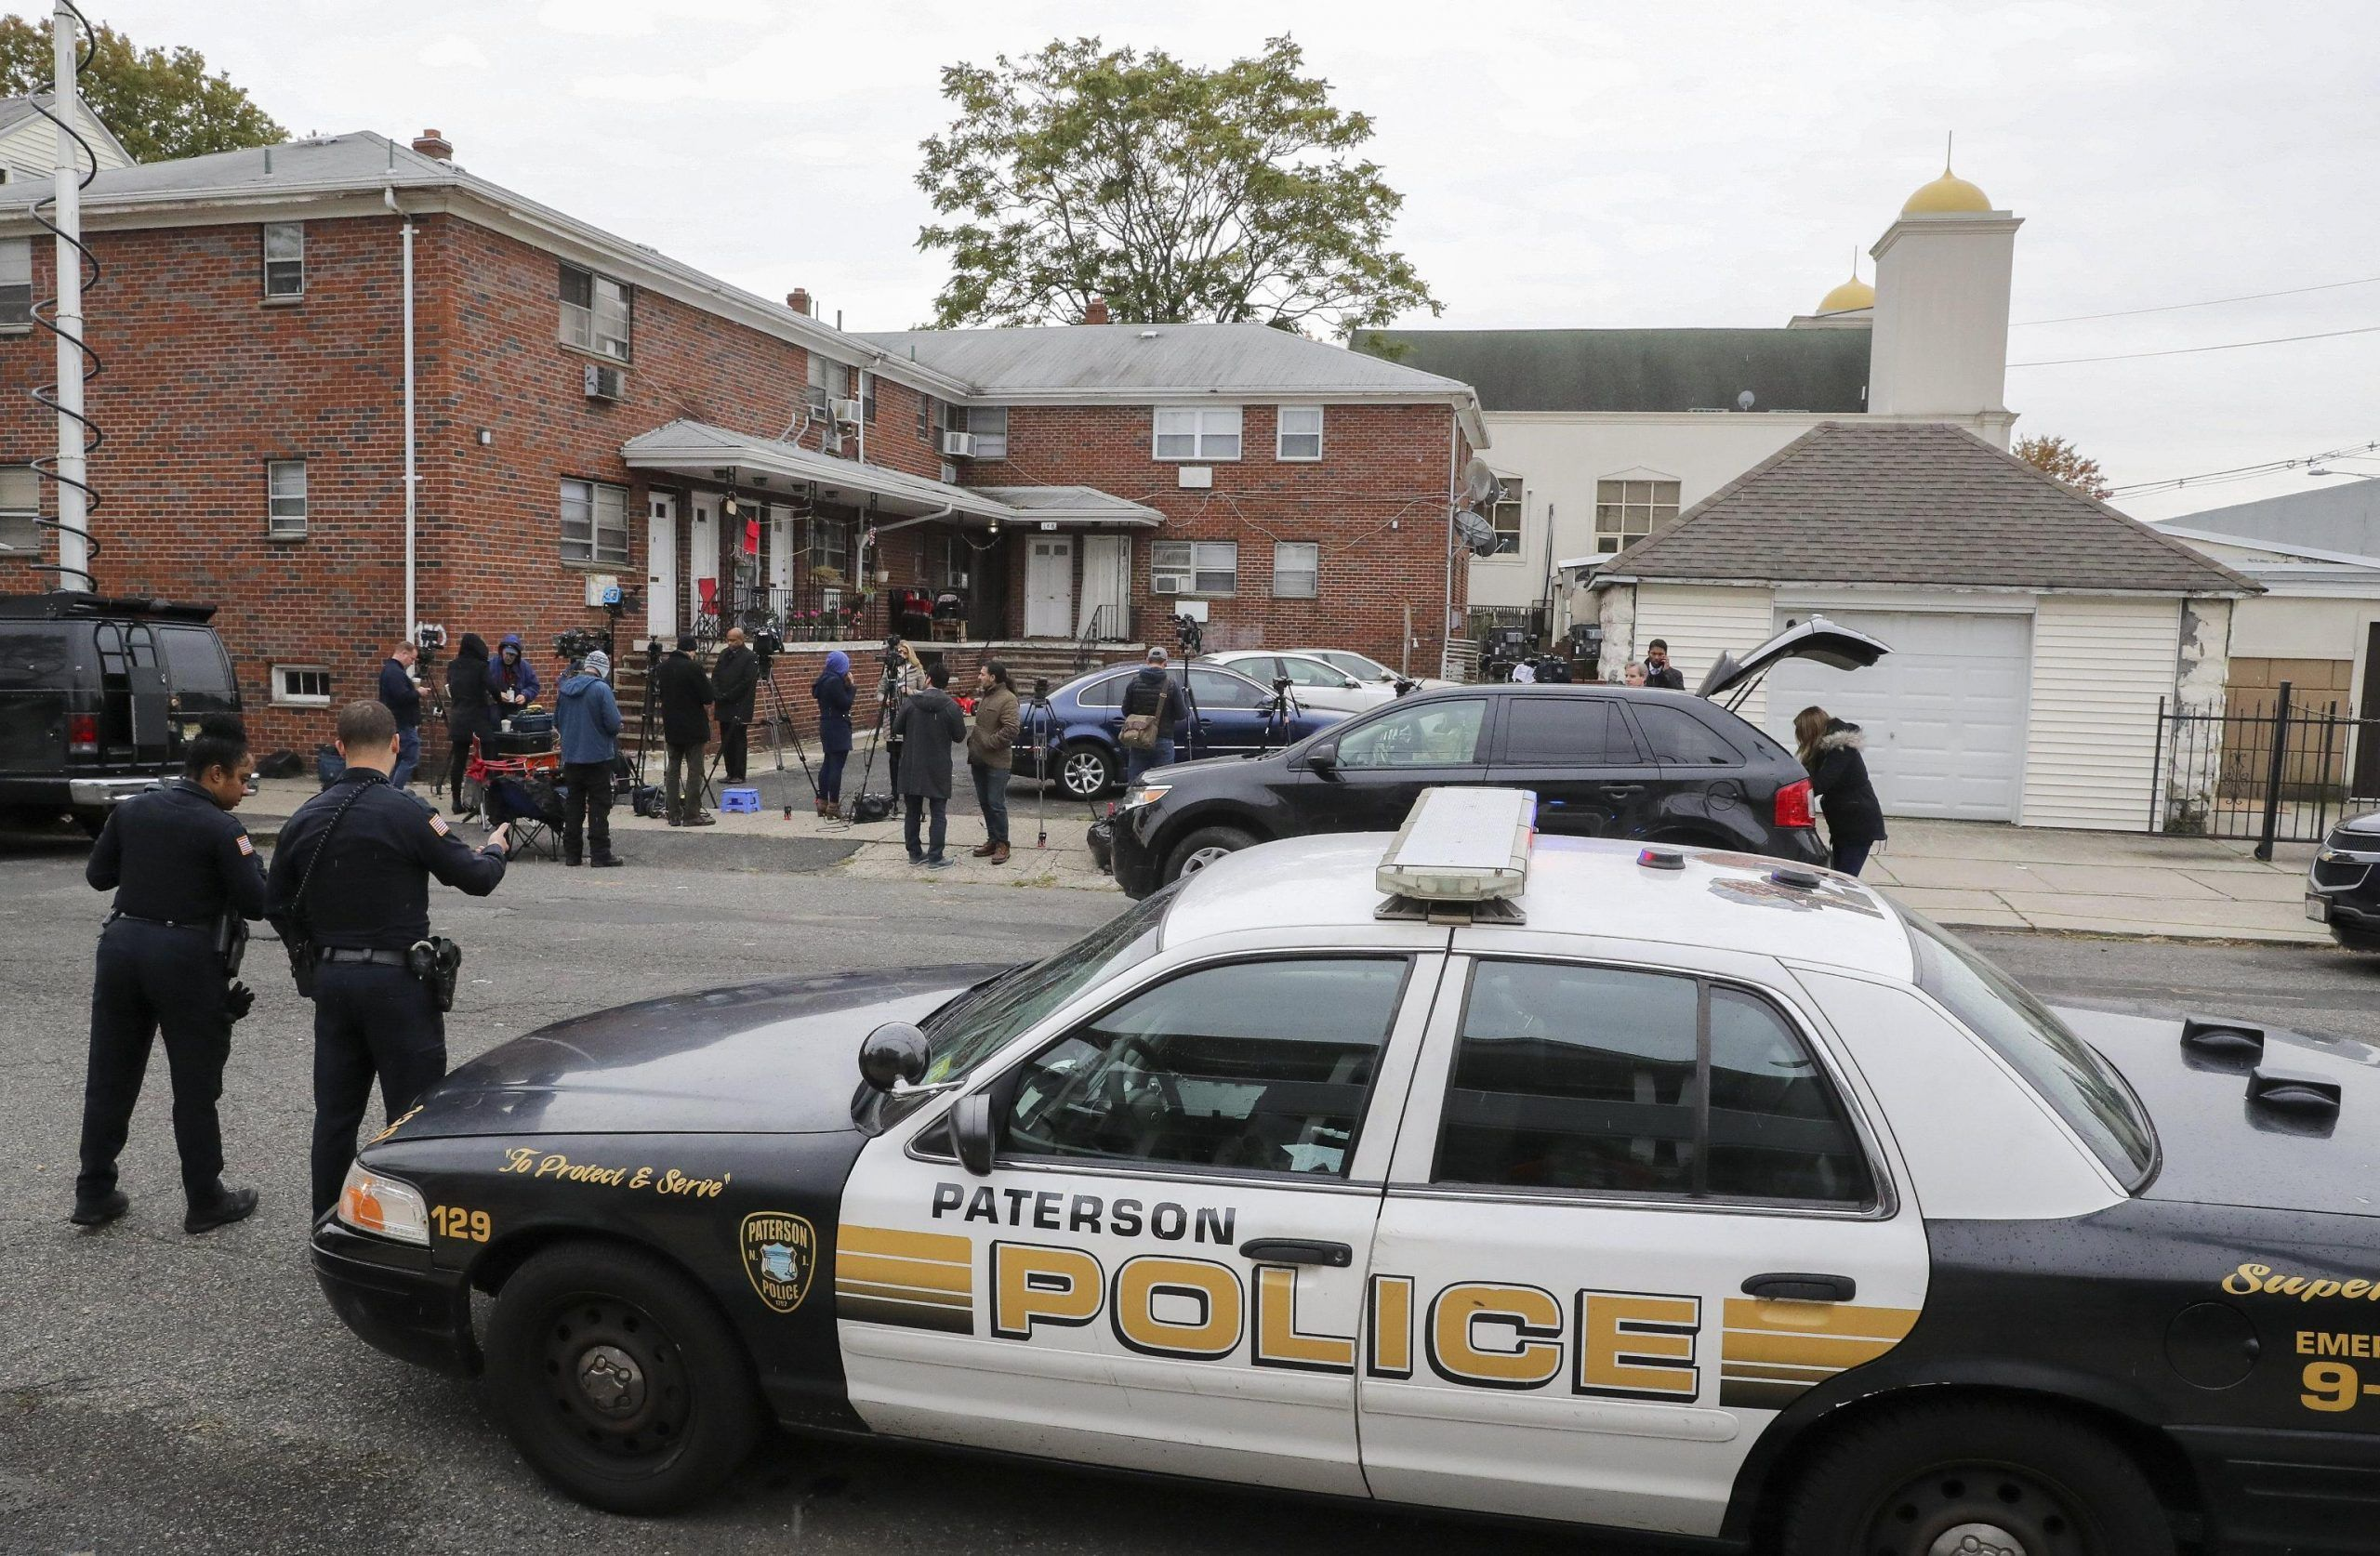 Truck attack suspect sites in Paterson, New Jersey, USA